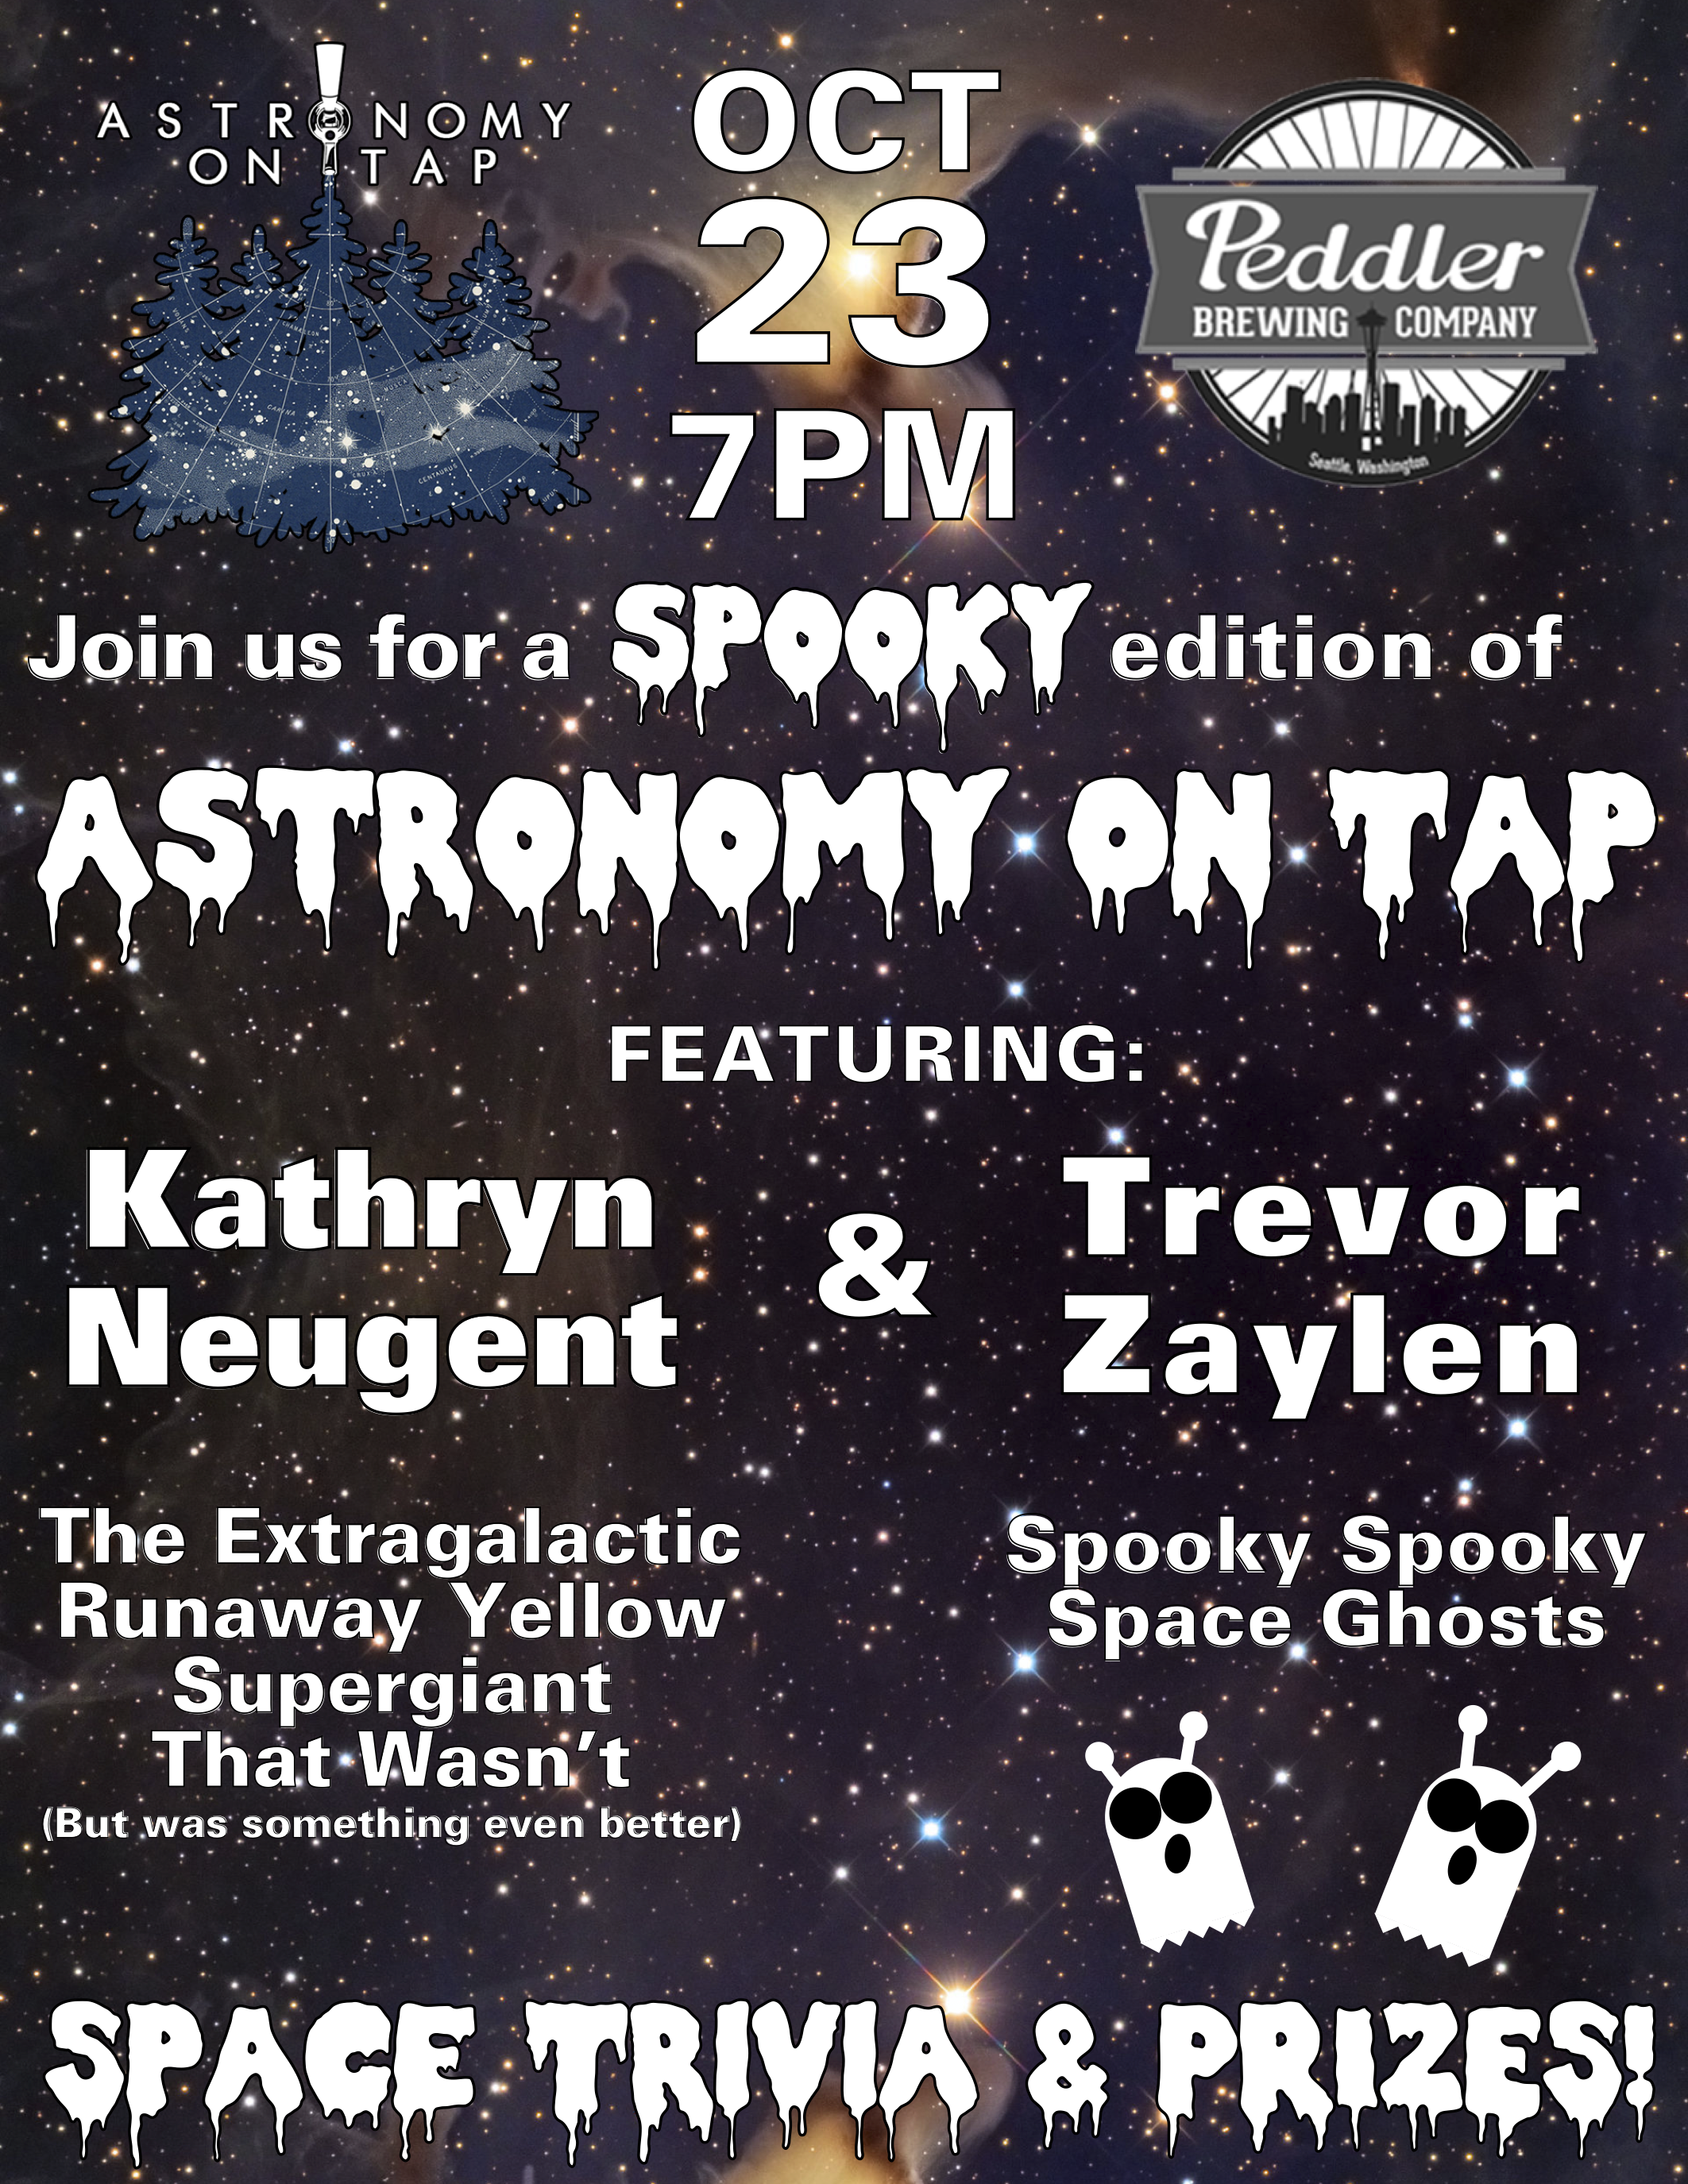 Astronomy on Tap Seattle, 7pm 10/23 at Peddler Brewing